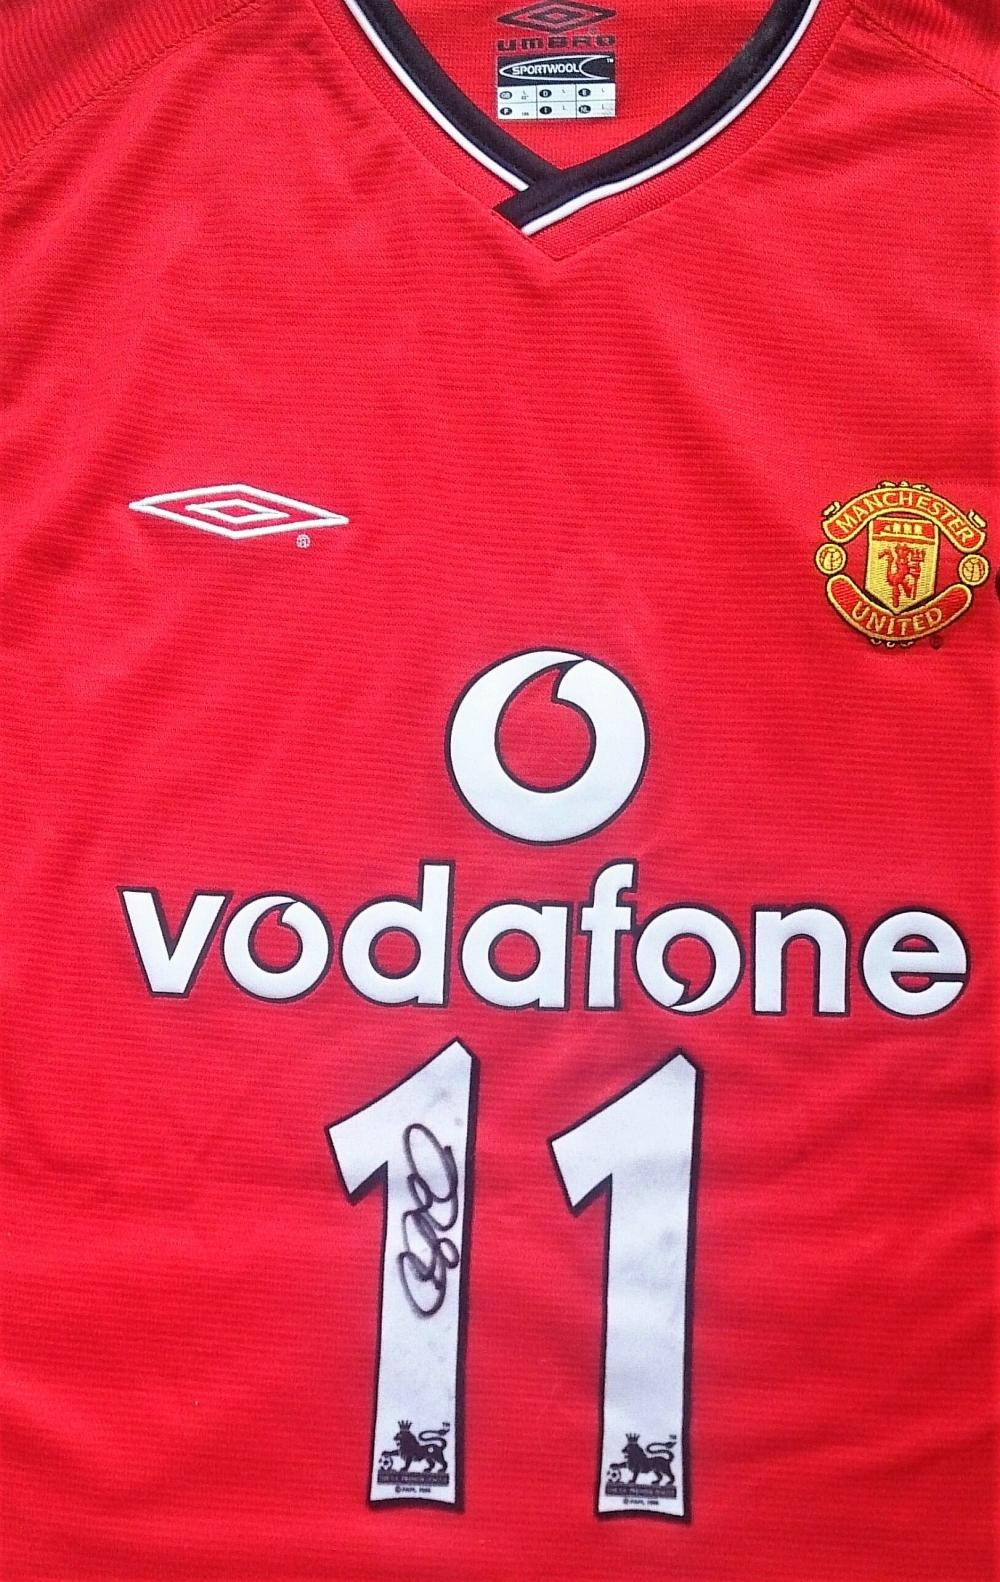 Lot 51: Signed Manchester United Football Shirt - Ryan Joseph Giggs, OBE (Wilson; born 29 November 1973) is a Welsh football coach and former player who is the co-owner of Salford City. He played his entire professional career for